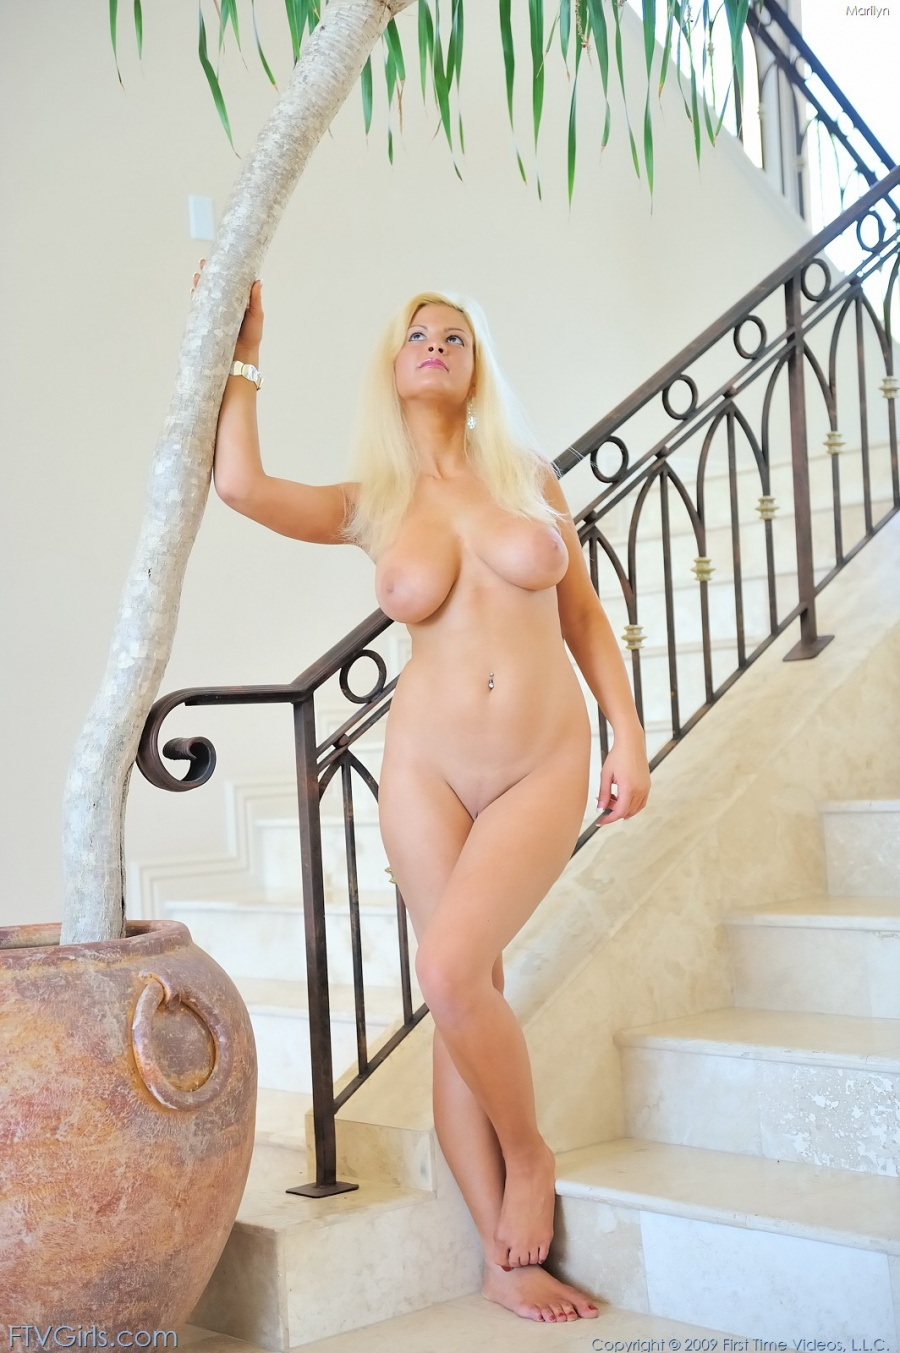 ... is a natural busty girl that just look amazing naked and masturbating